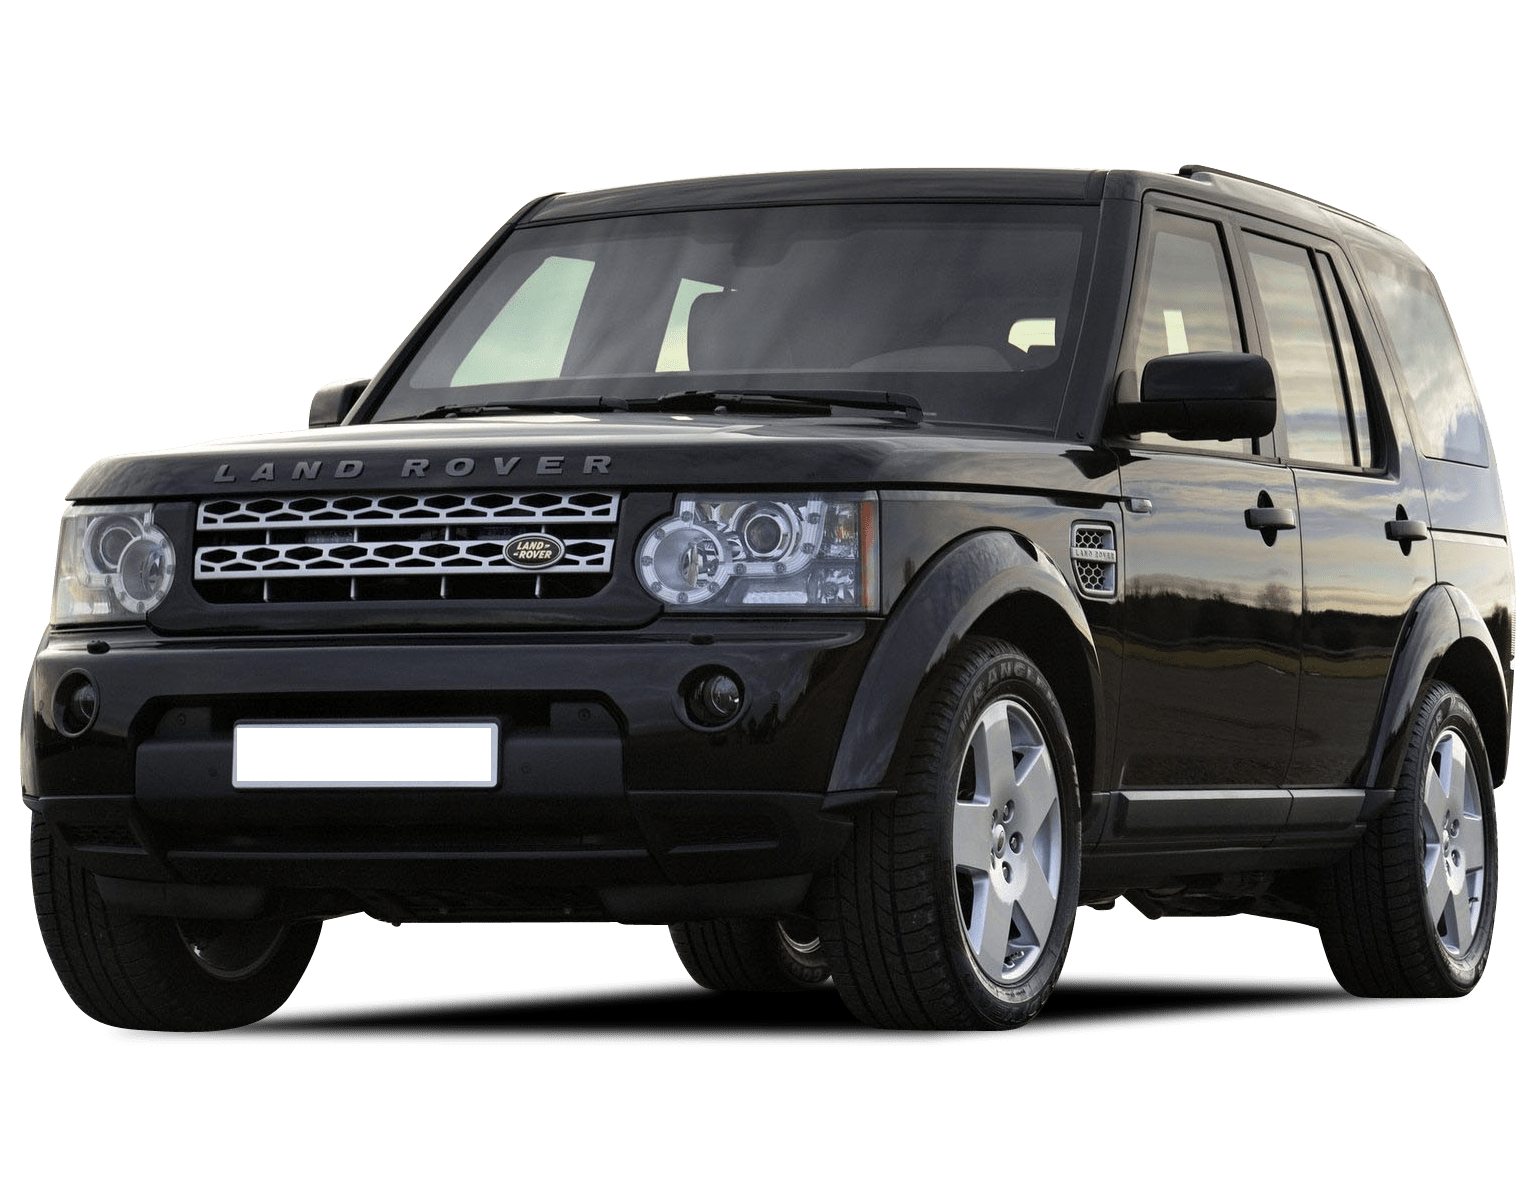 100 land rover discovery 2016 white land rover. Black Bedroom Furniture Sets. Home Design Ideas